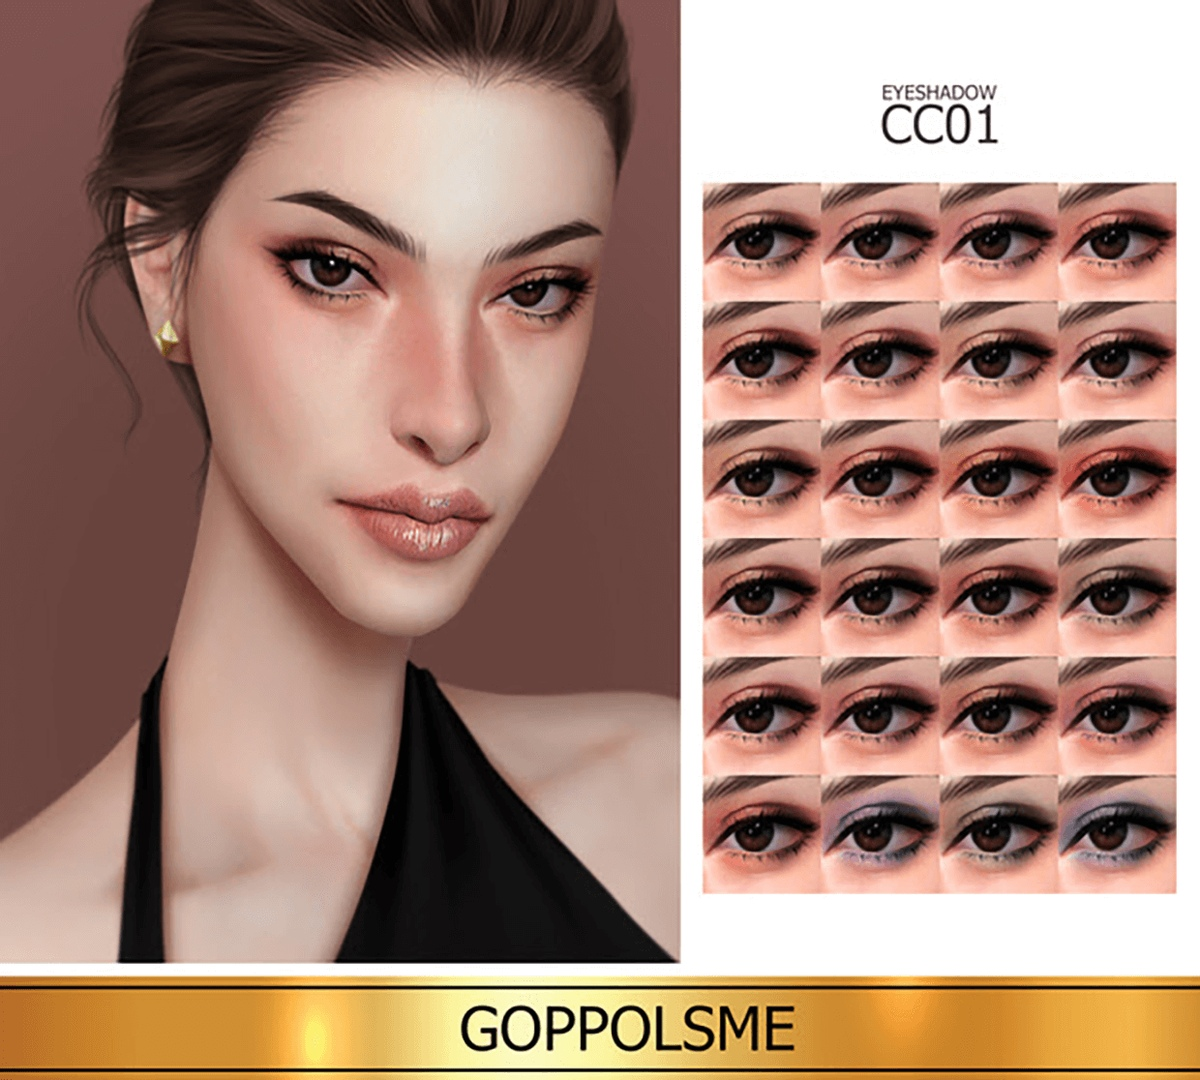 Eyeshadow CC 01 by GoppolsMe